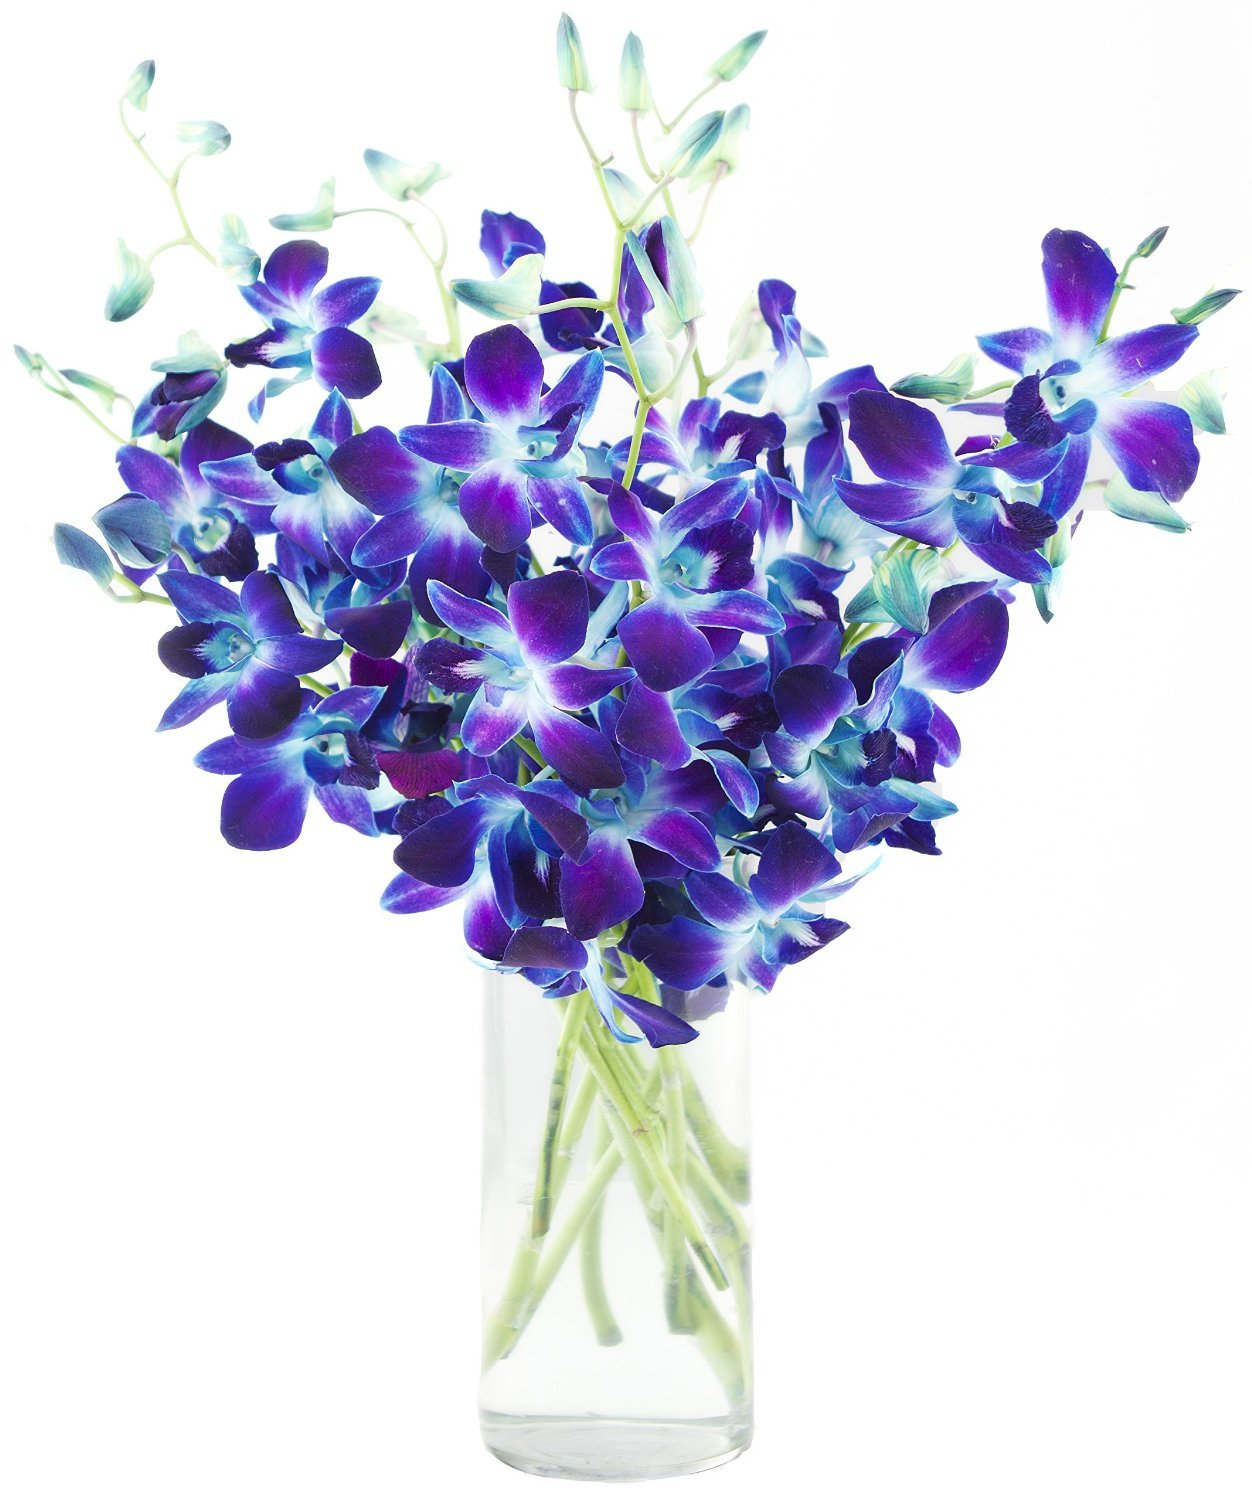 Amazon eflowerwholesale fresh cut flowers dendrobium blue amazon eflowerwholesale fresh cut flowers dendrobium blue orchids bom soniawith free vase garden outdoor izmirmasajfo